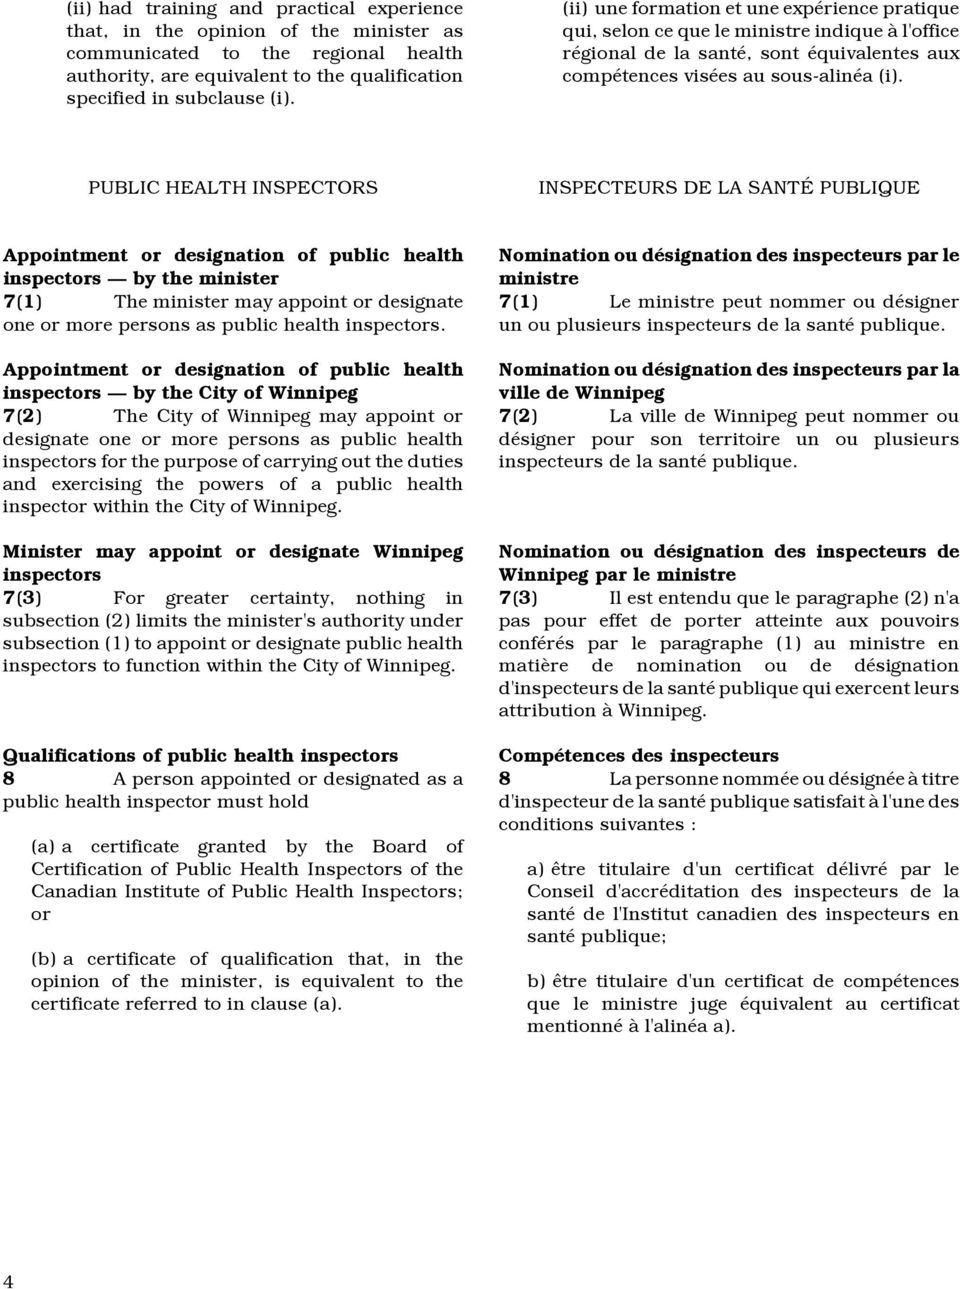 PUBLIC HEALTH INSPECTORS INSPECTEURS DE LA SANTÉ PUBLIQUE inspectors by the minister 7(1) The minister may appoint or designate one or more persons as public health inspectors.